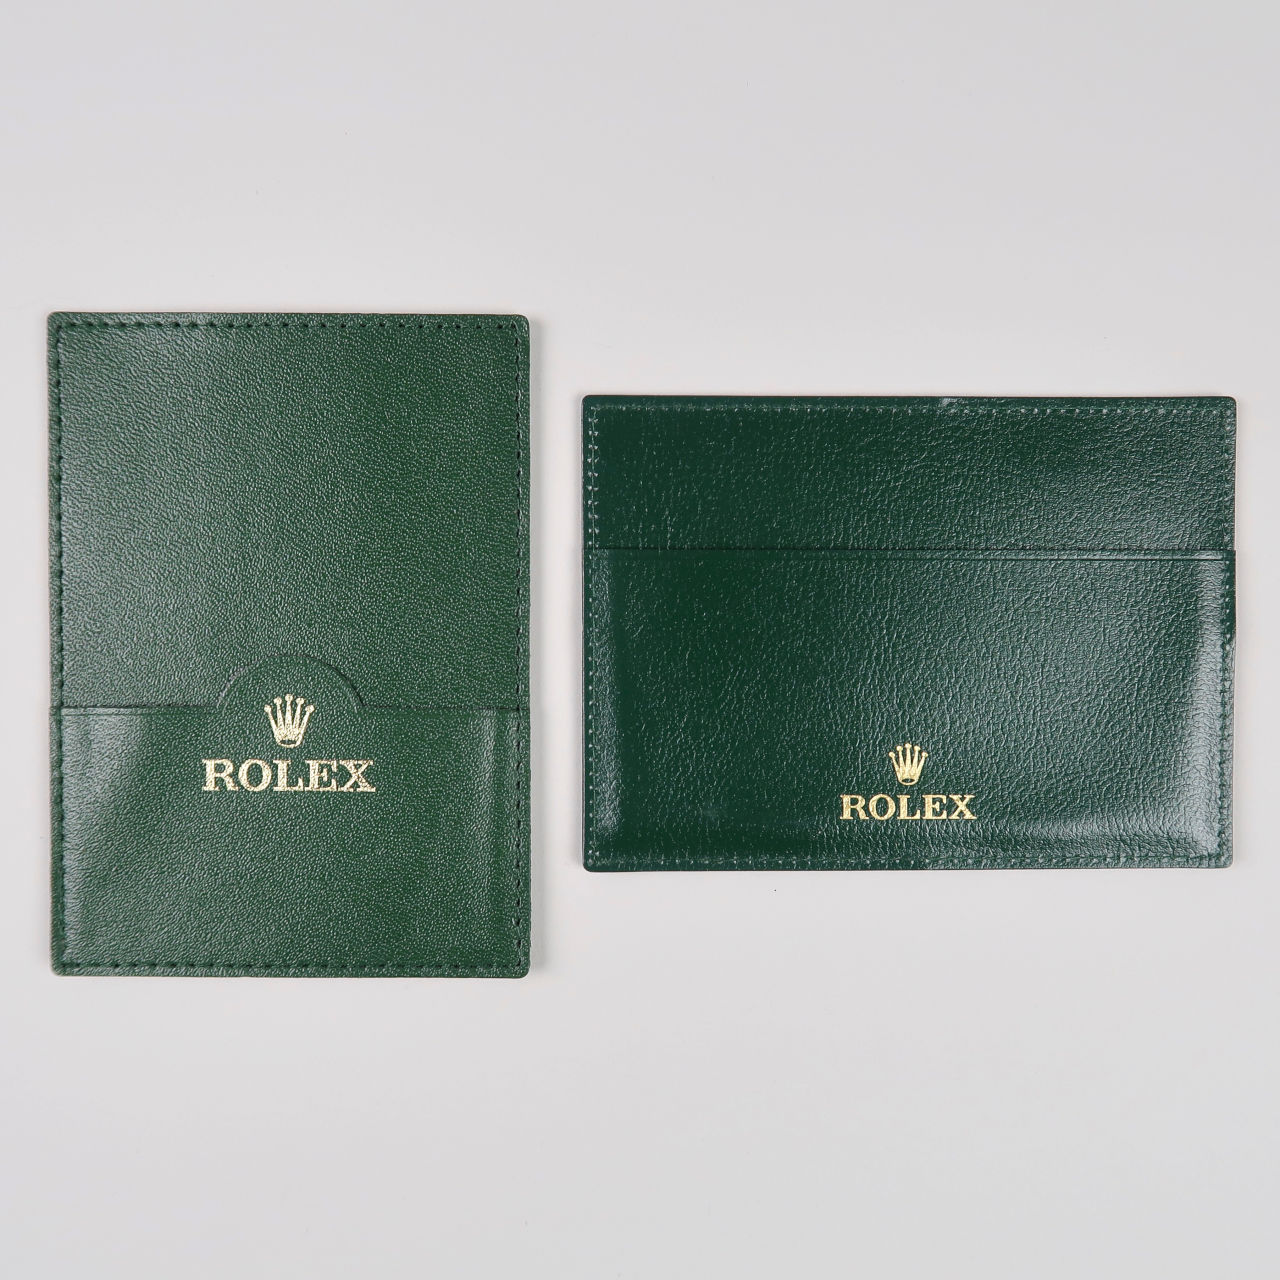 Rolex leather document wallet